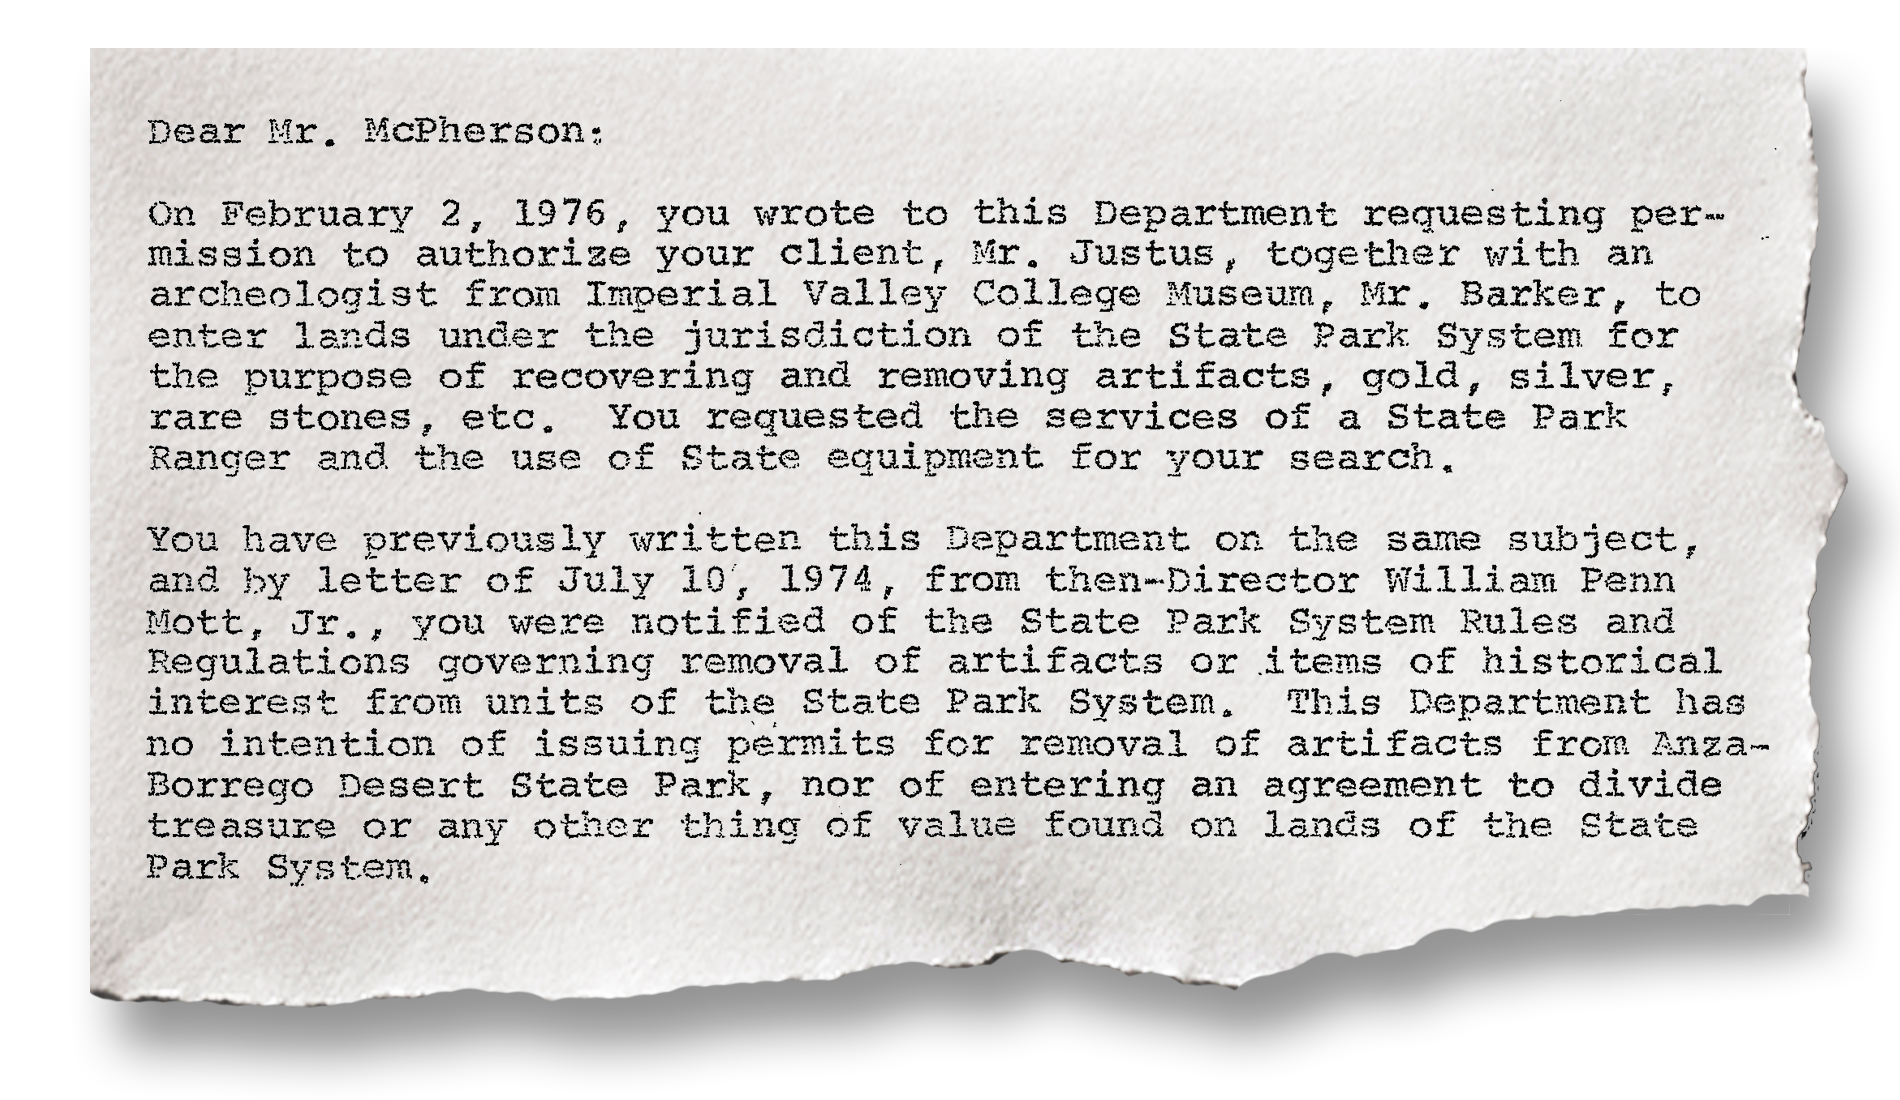 """In the early 1970s, lawyer Eugene McPherson sought an antiquities permit for his client Lawrence Justus, in order to locate """"certain artifacts"""" in Anza-Borrego Desert State Park in Southern California."""